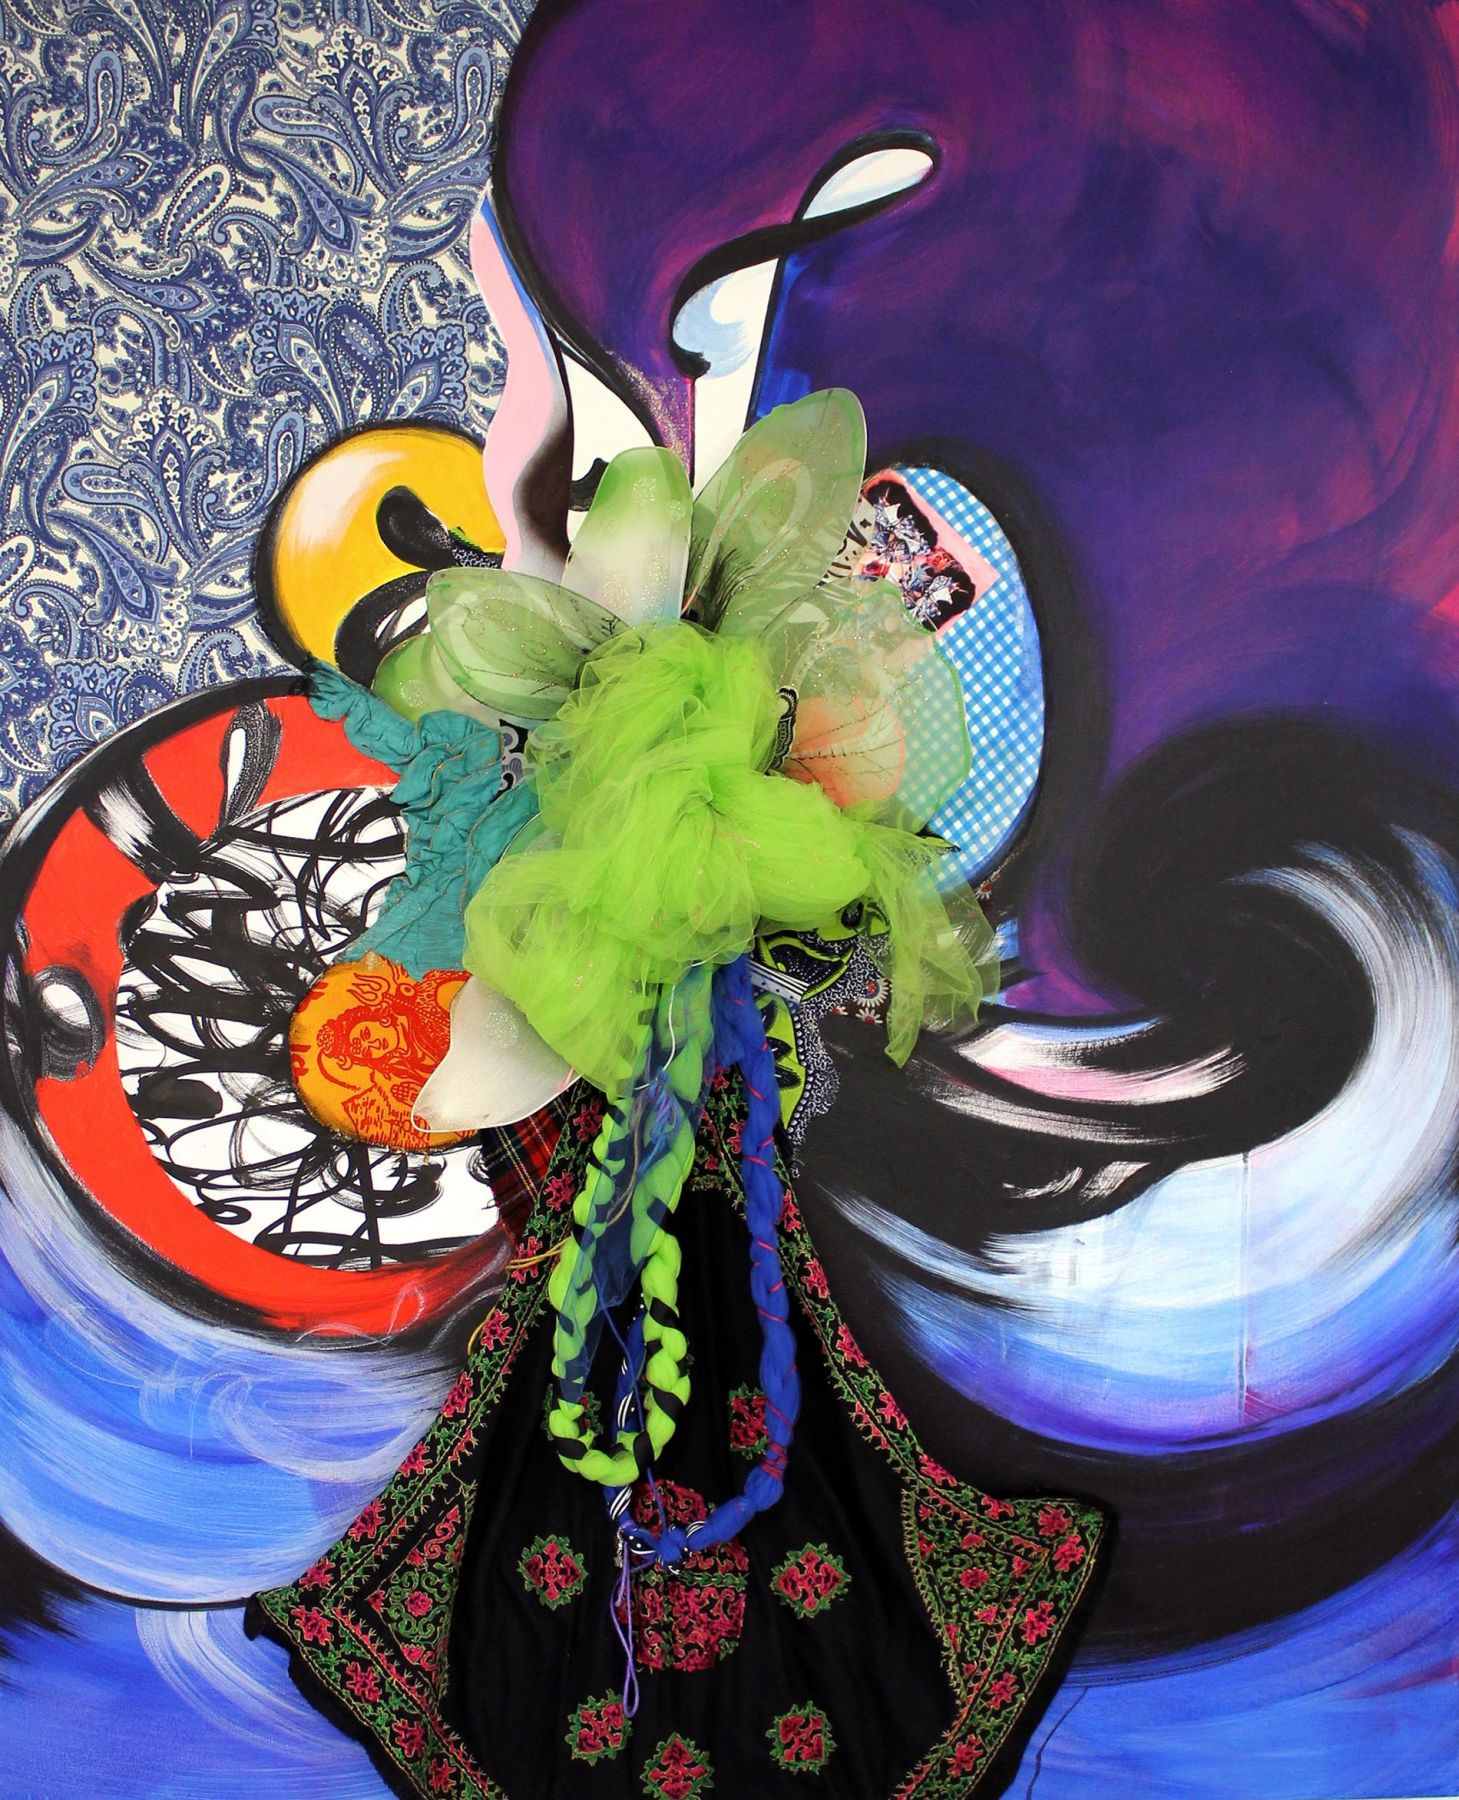 , SHINIQUE SMITHShield Maiden,2014Acrylic, fabric and collage on canvas over wood panel